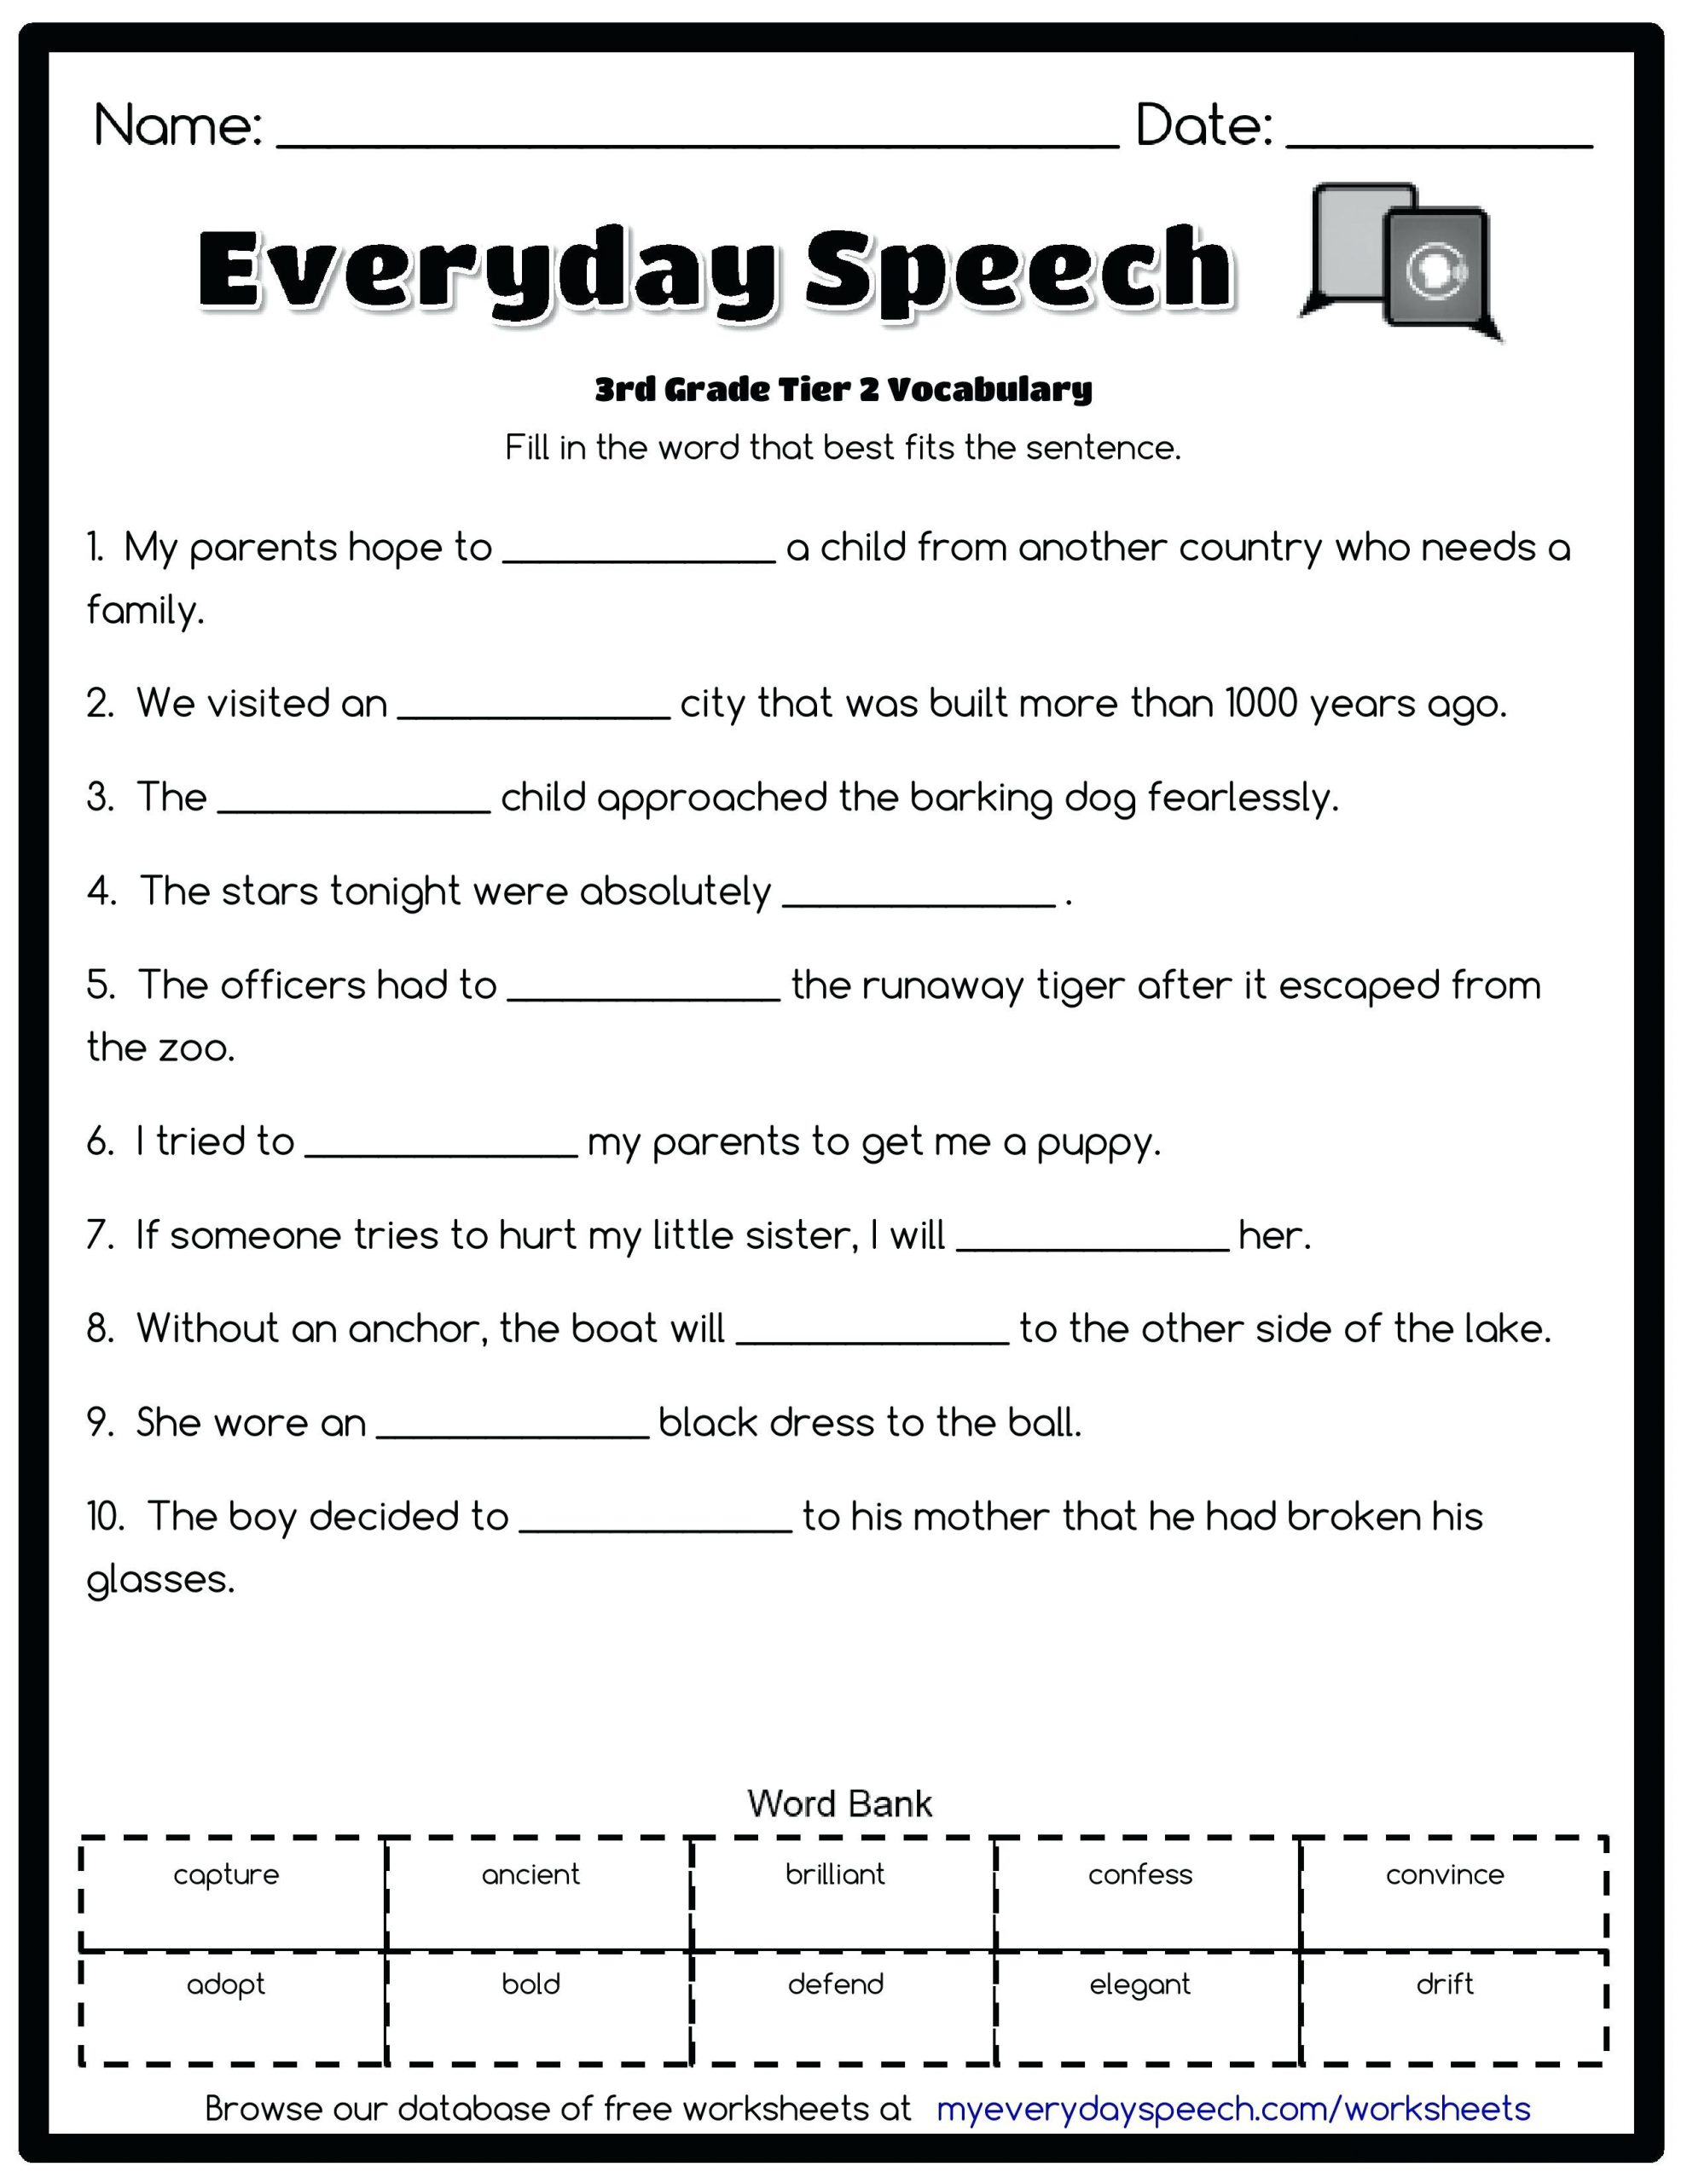 3rd Grade Vocabulary Worksheets Pdf Vocab for 3rd Grade Best Grade Spelling Words Ideas Grade